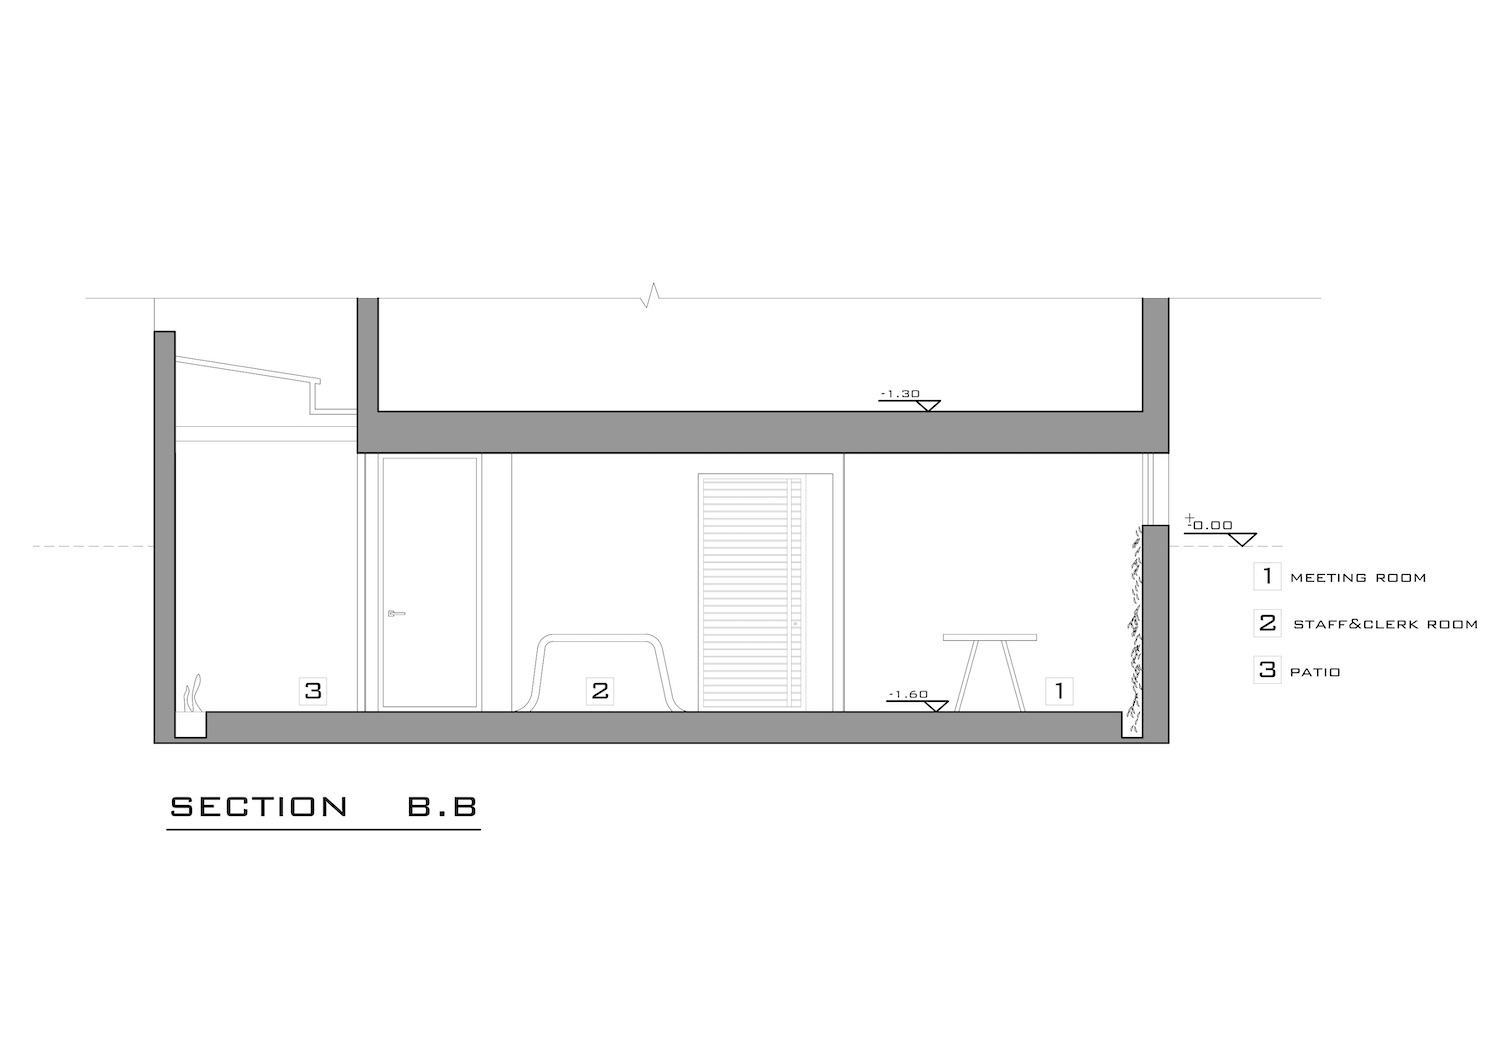 architectural section detail for office